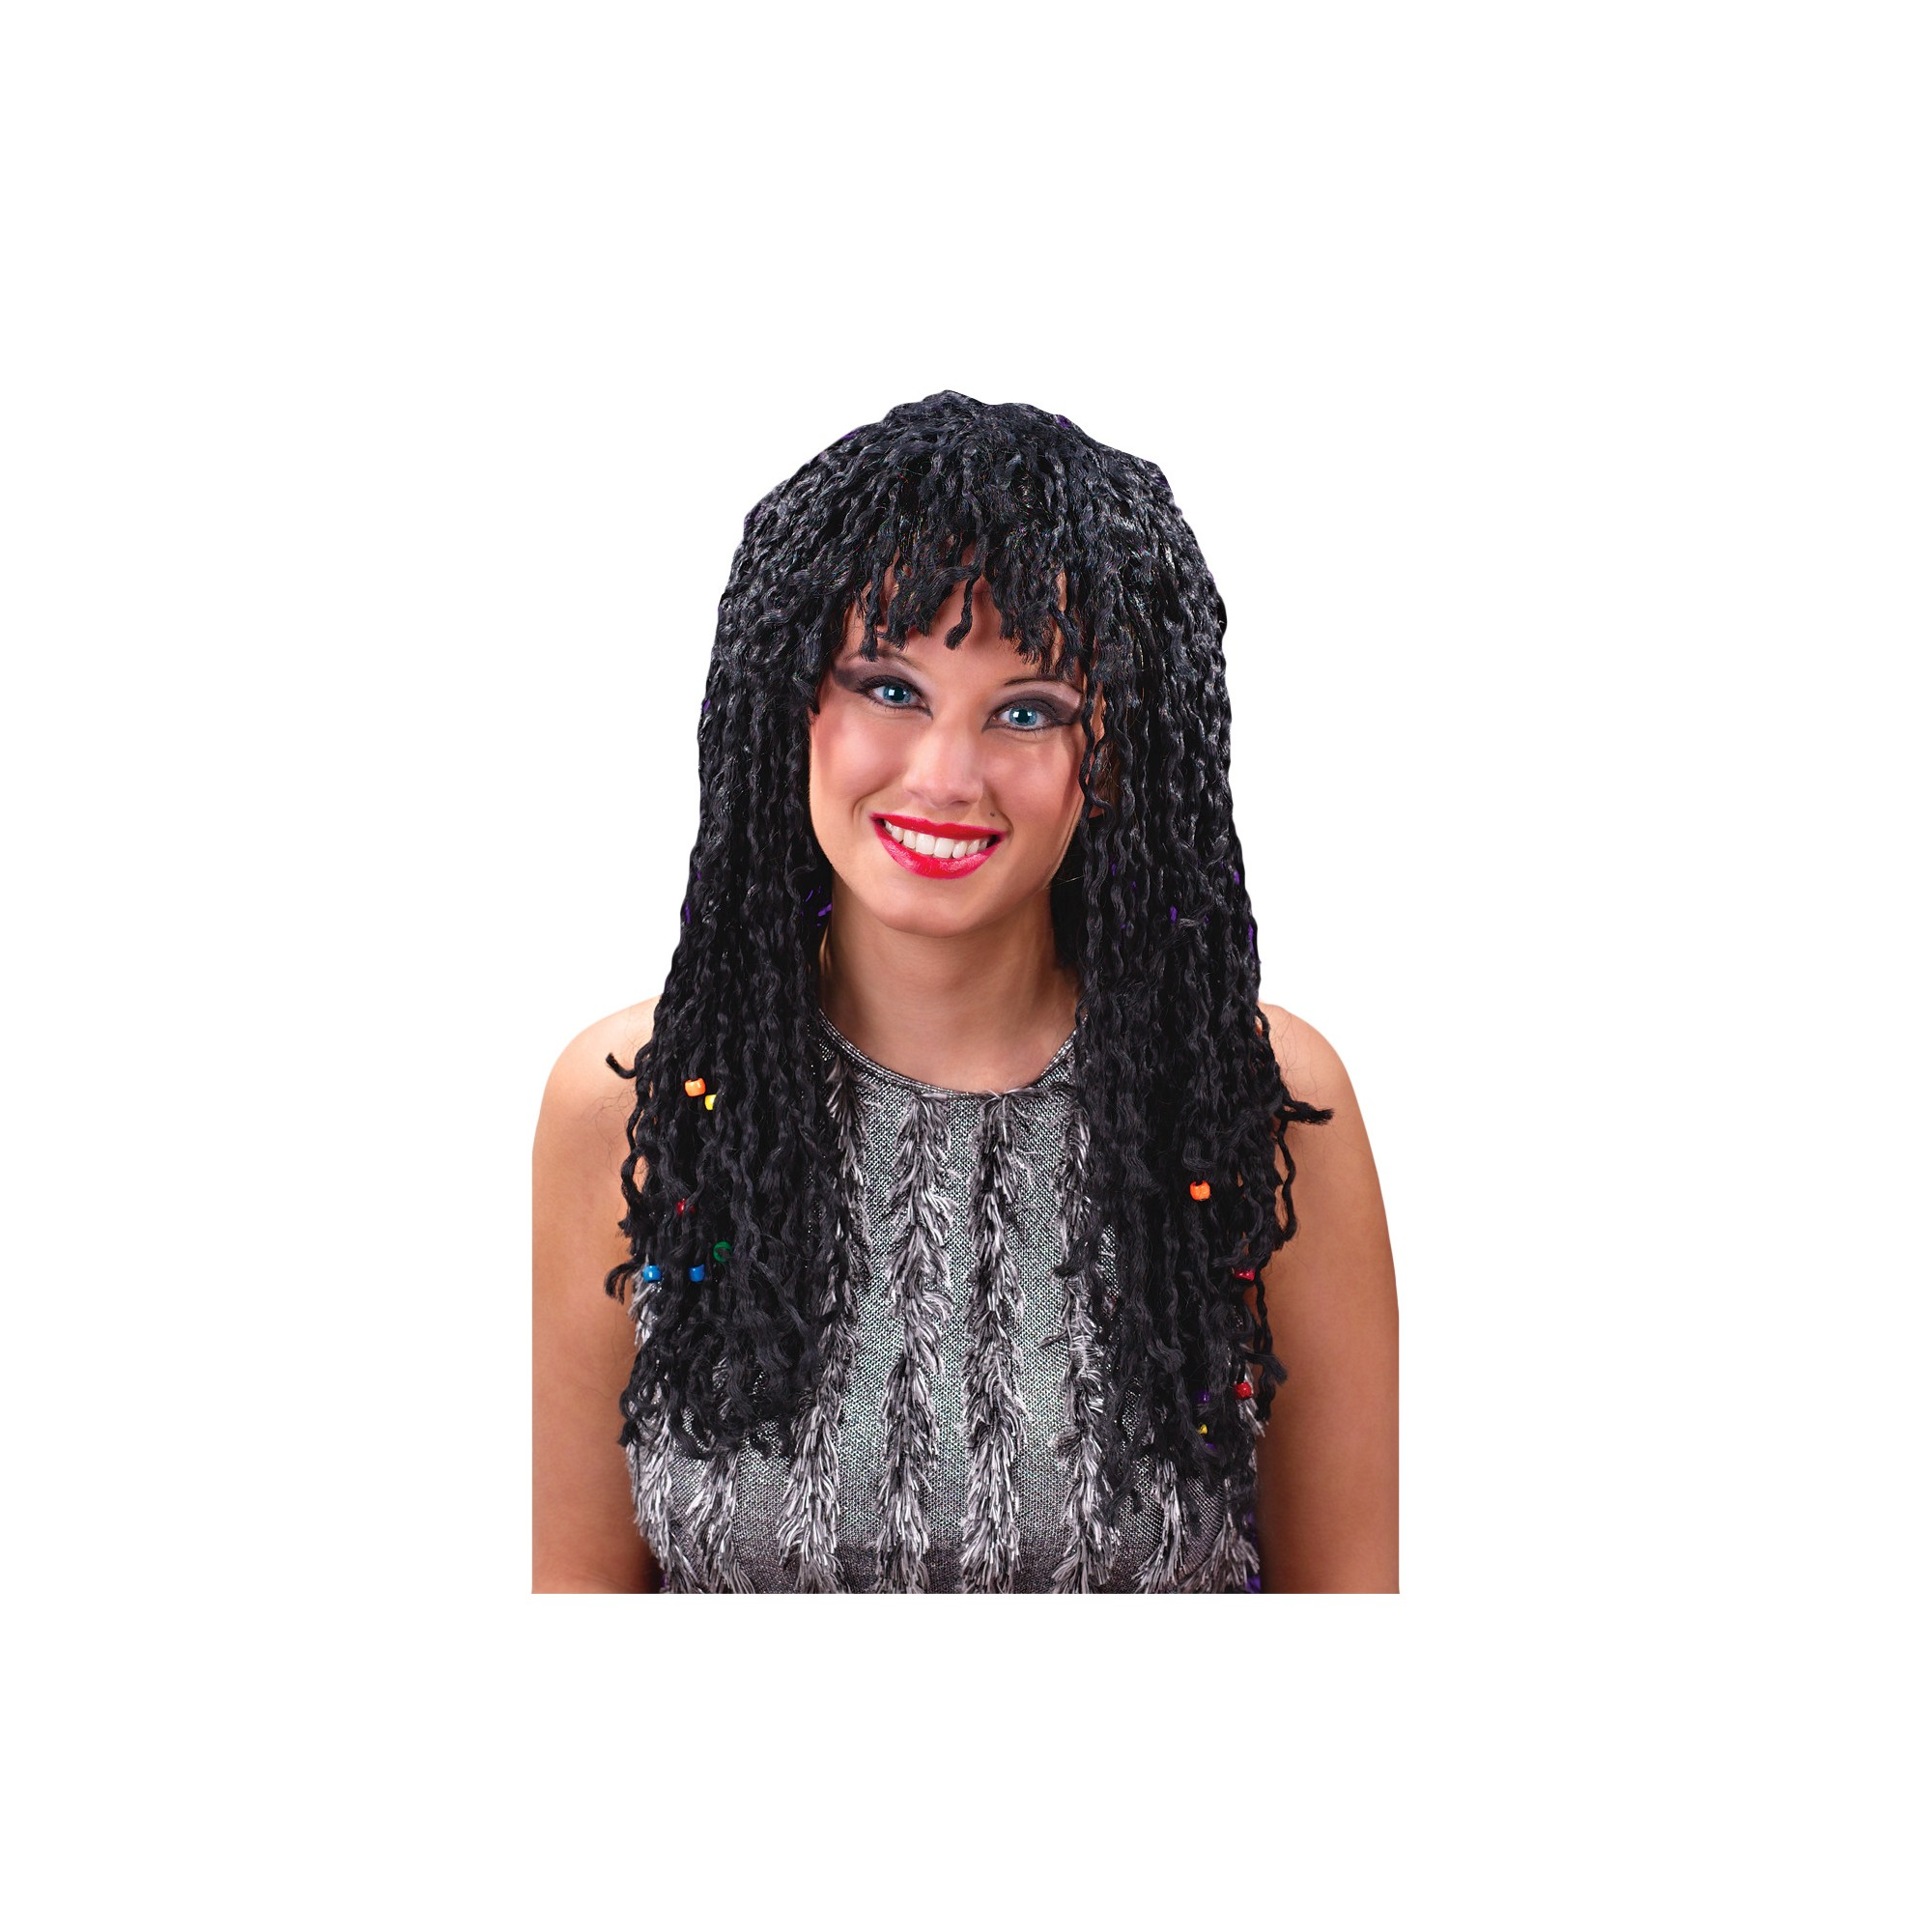 costume wig beaded twist black, adult unisex | costume wigs and products